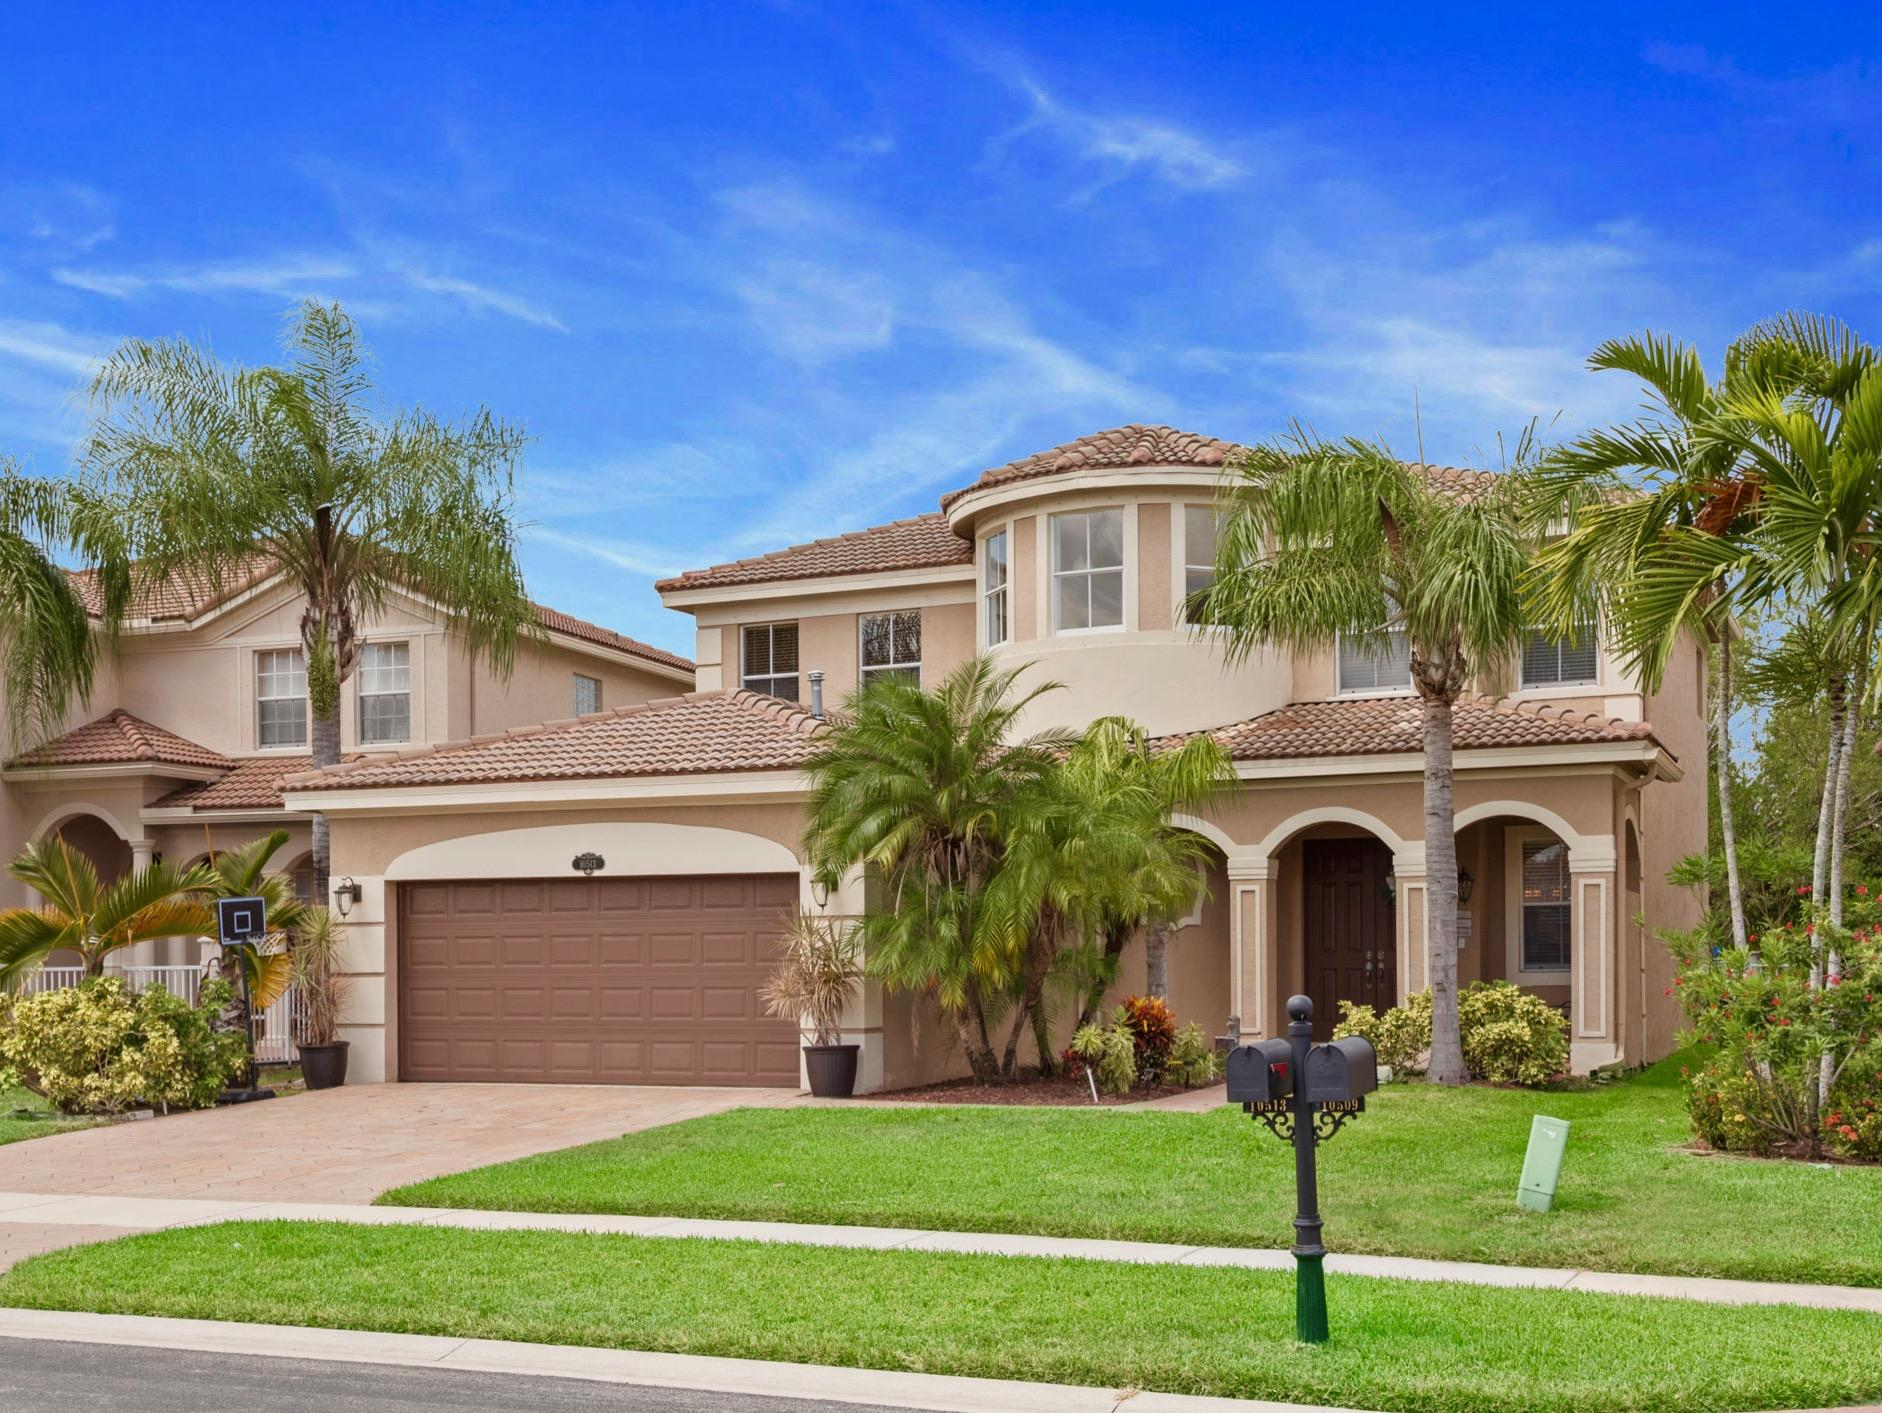 Home for sale in Black Diamond Wellington Florida